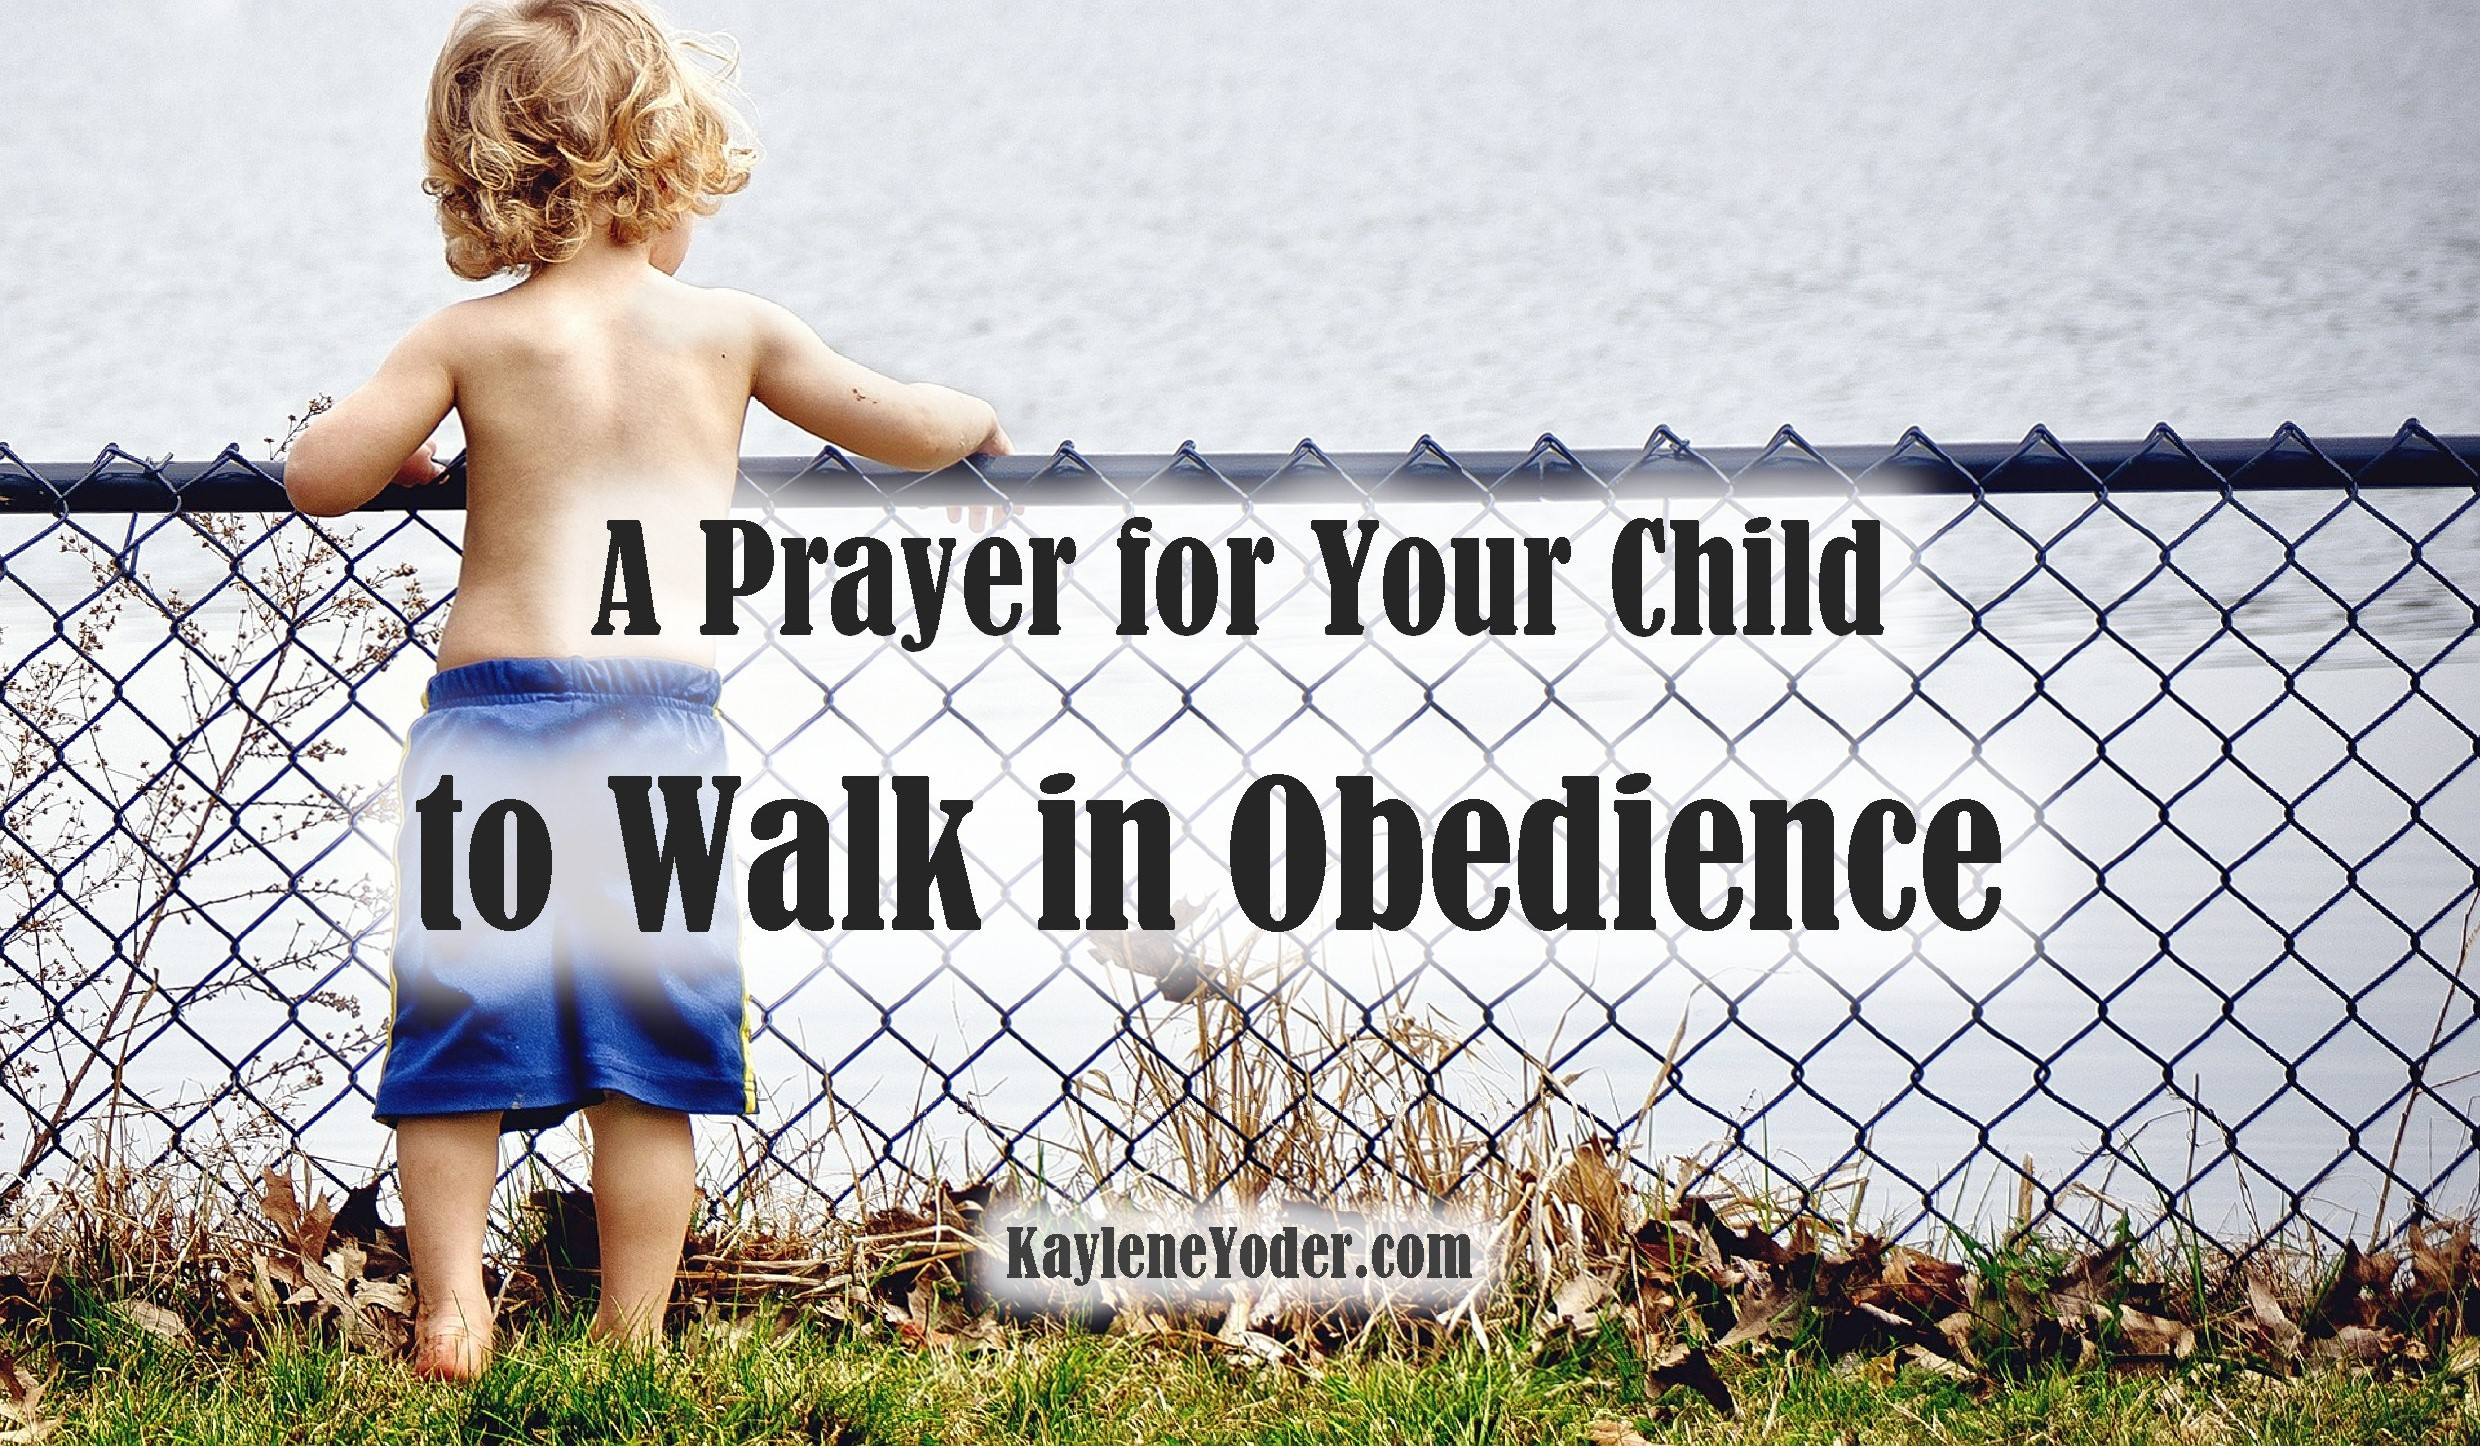 Why the child does not walk